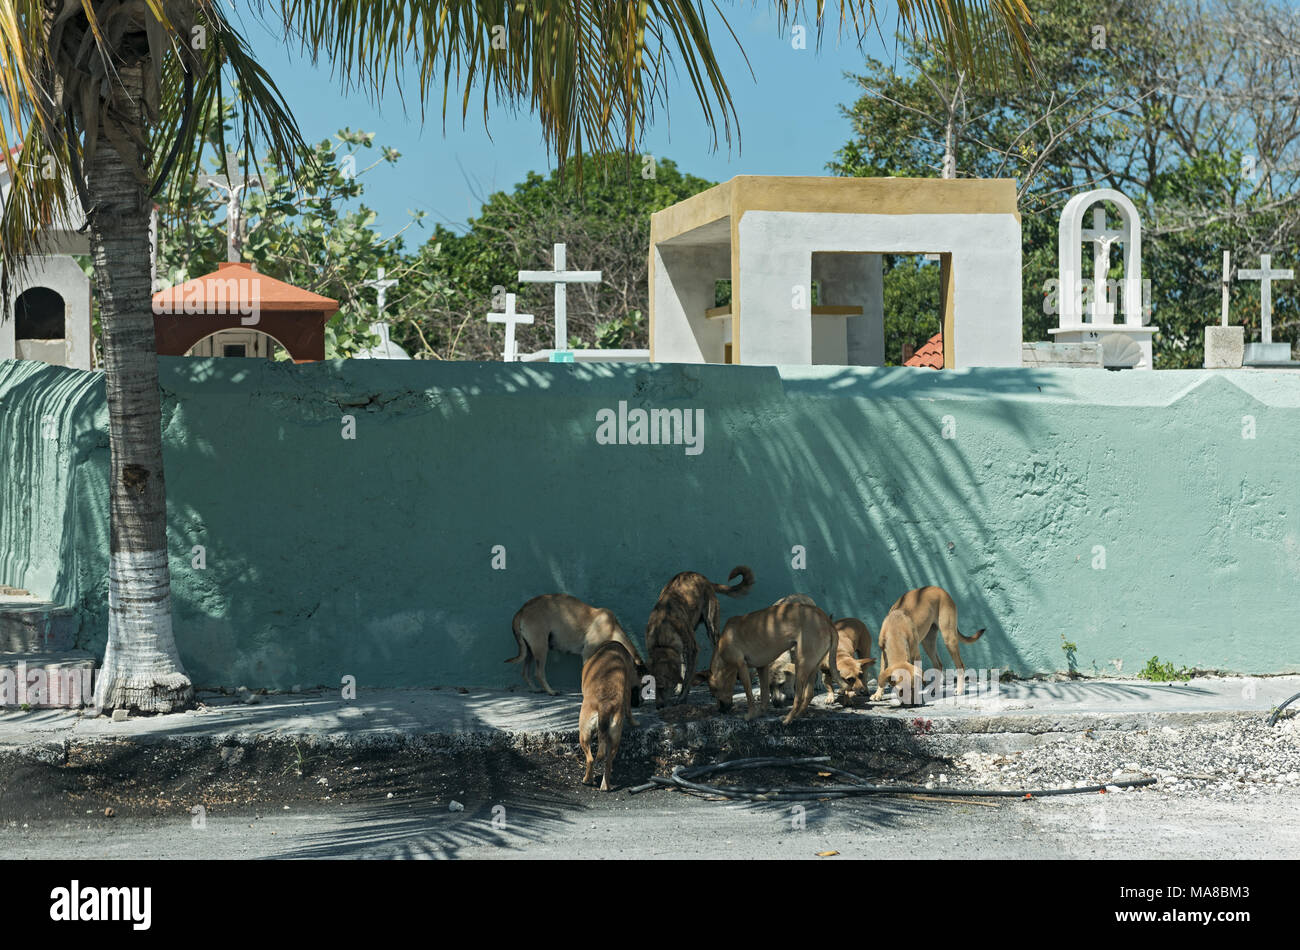 Street dogs in front of a cemetery wall in Progreso, Mexico - Stock Image